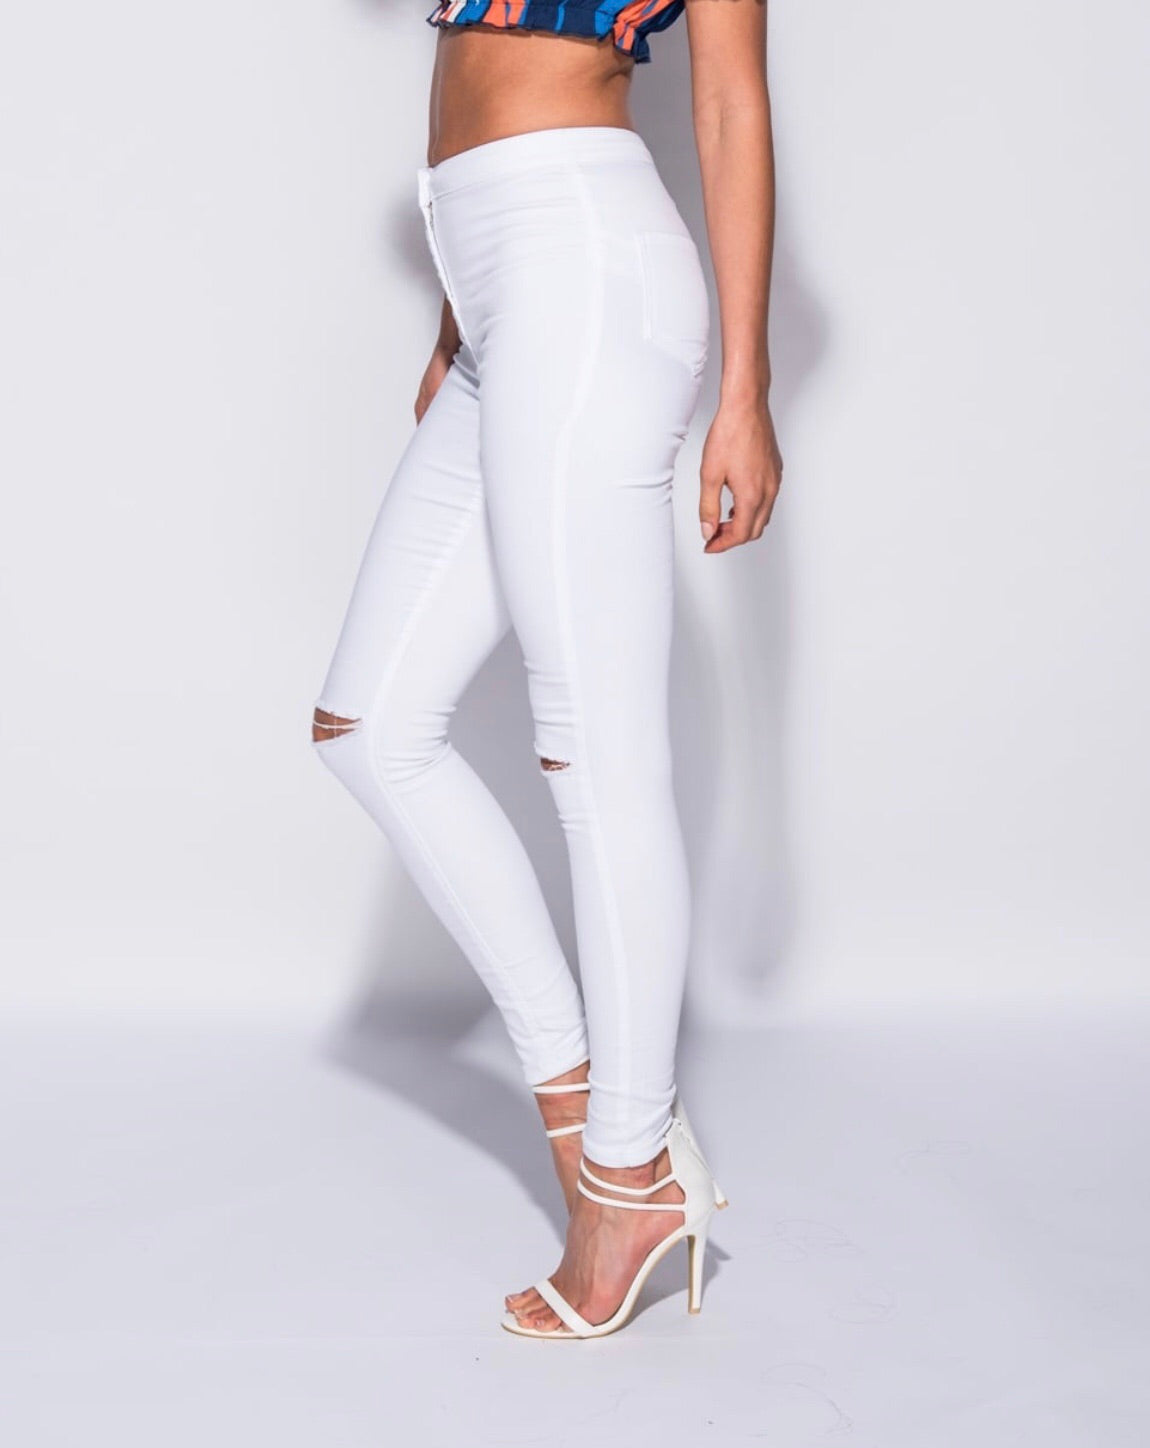 White High Waisted Jegguings